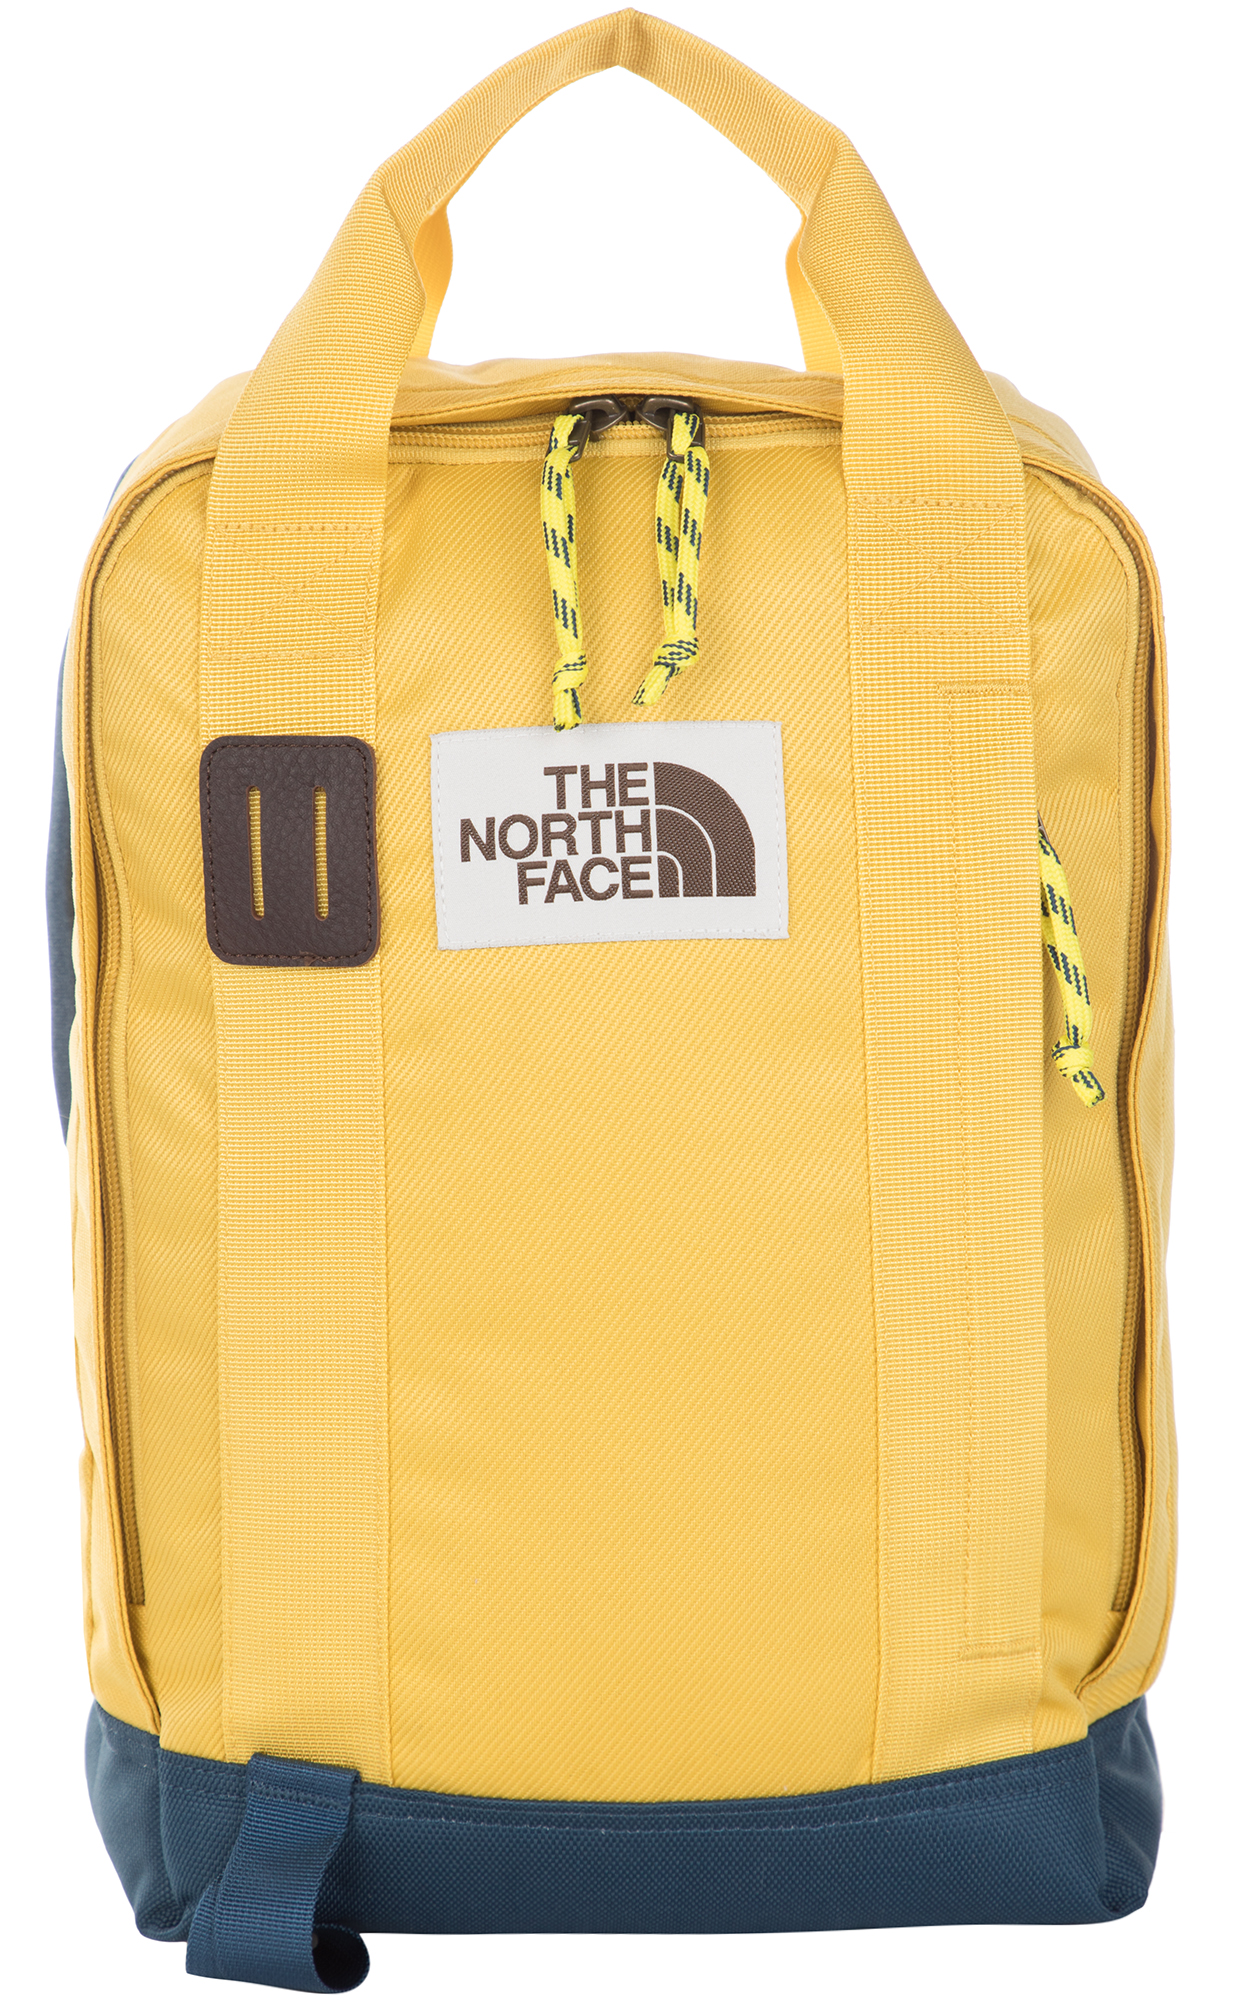 The North Face Рюкзак The North Face Tote рюкзак the north face the north face lineage ruck синий 23л